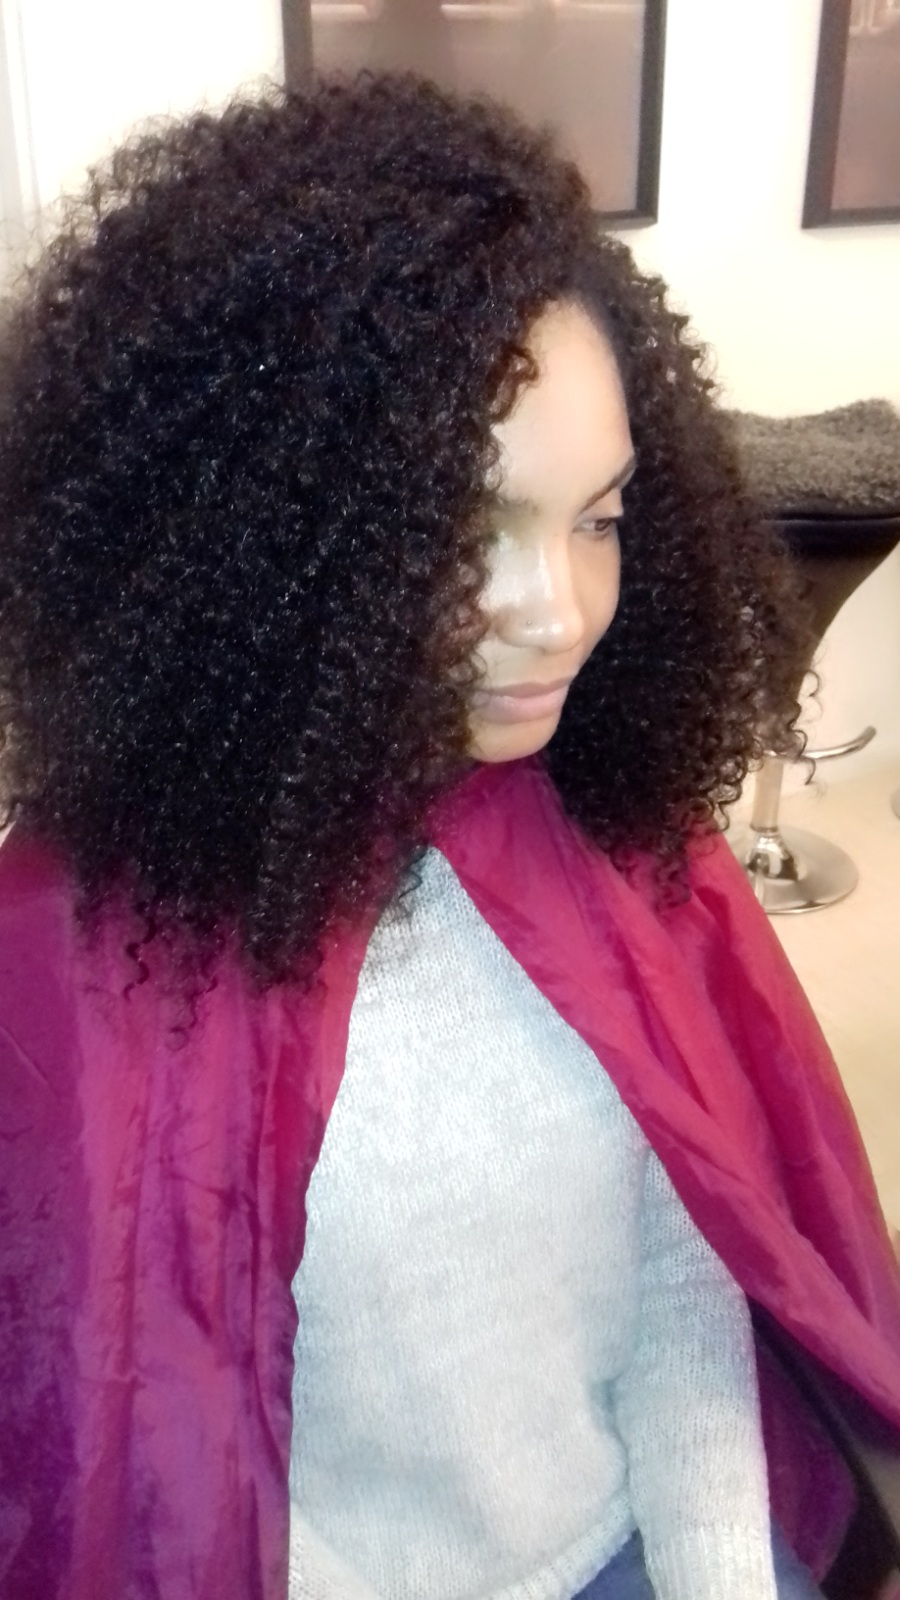 salon de coiffure afro tresse tresses box braids crochet braids vanilles tissages paris 75 77 78 91 92 93 94 95 HLWSWRWP